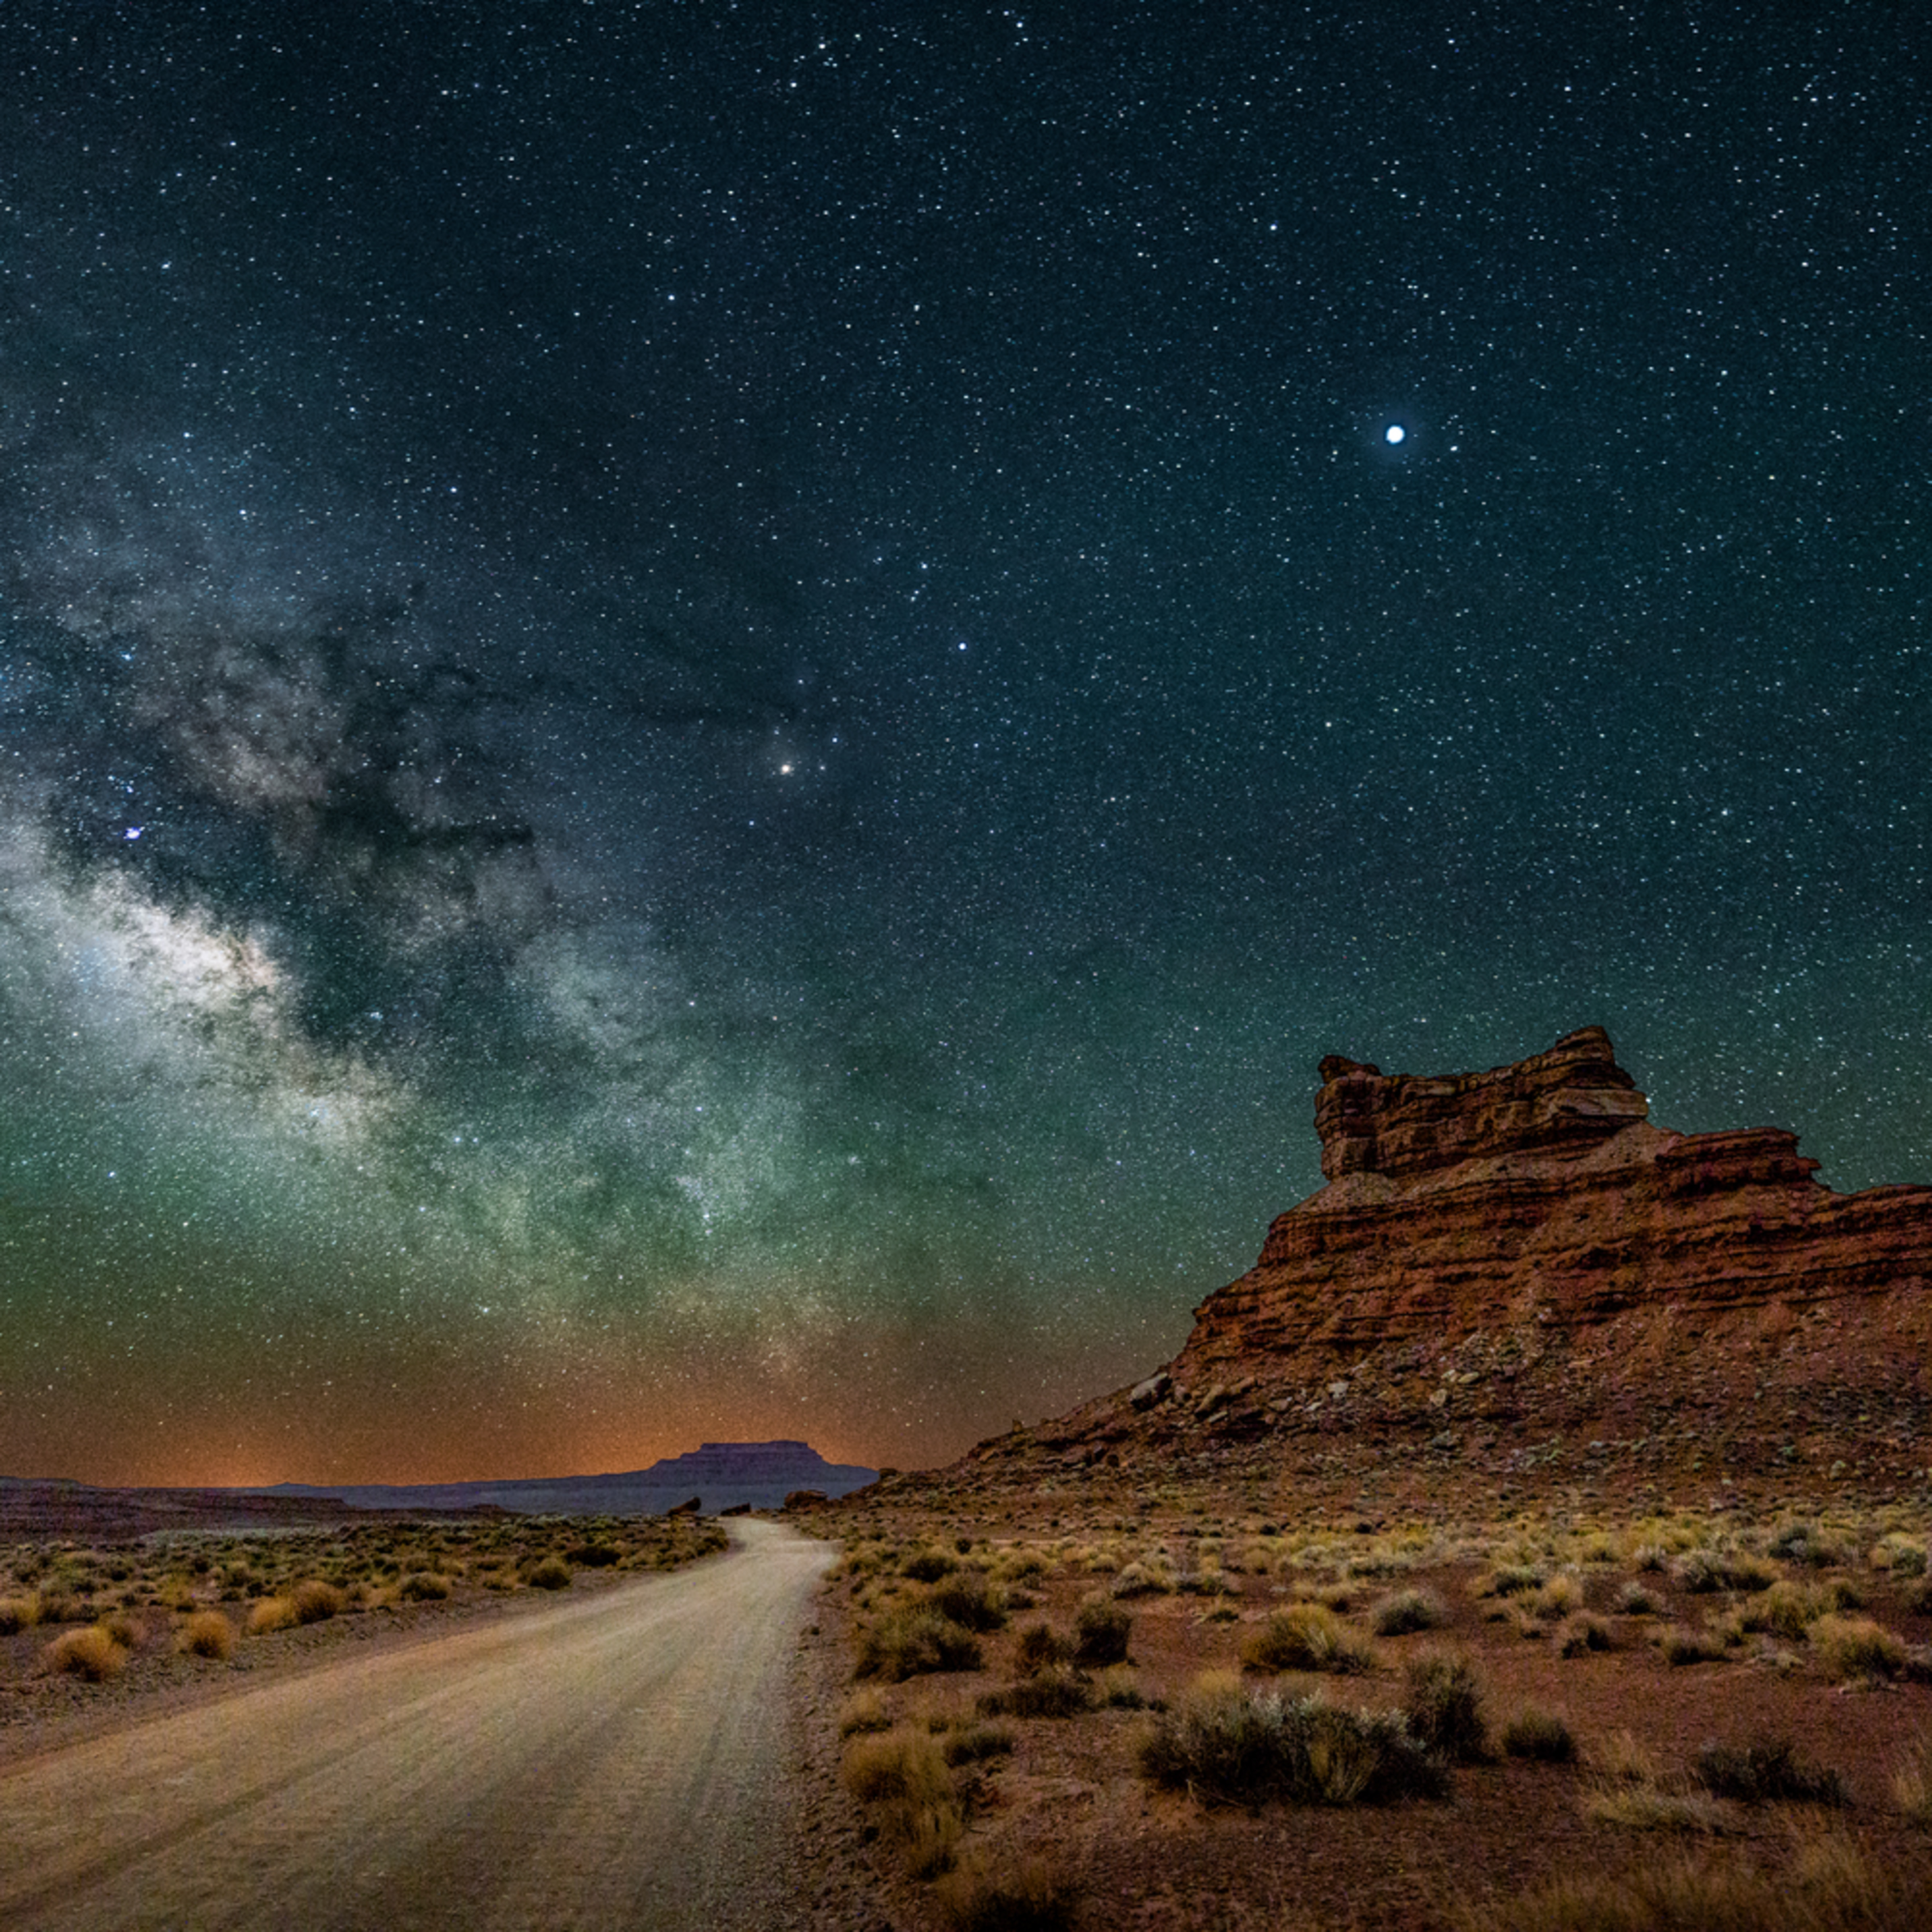 Valley of the gods nightscape 053 highway to the heavens qtmm6y